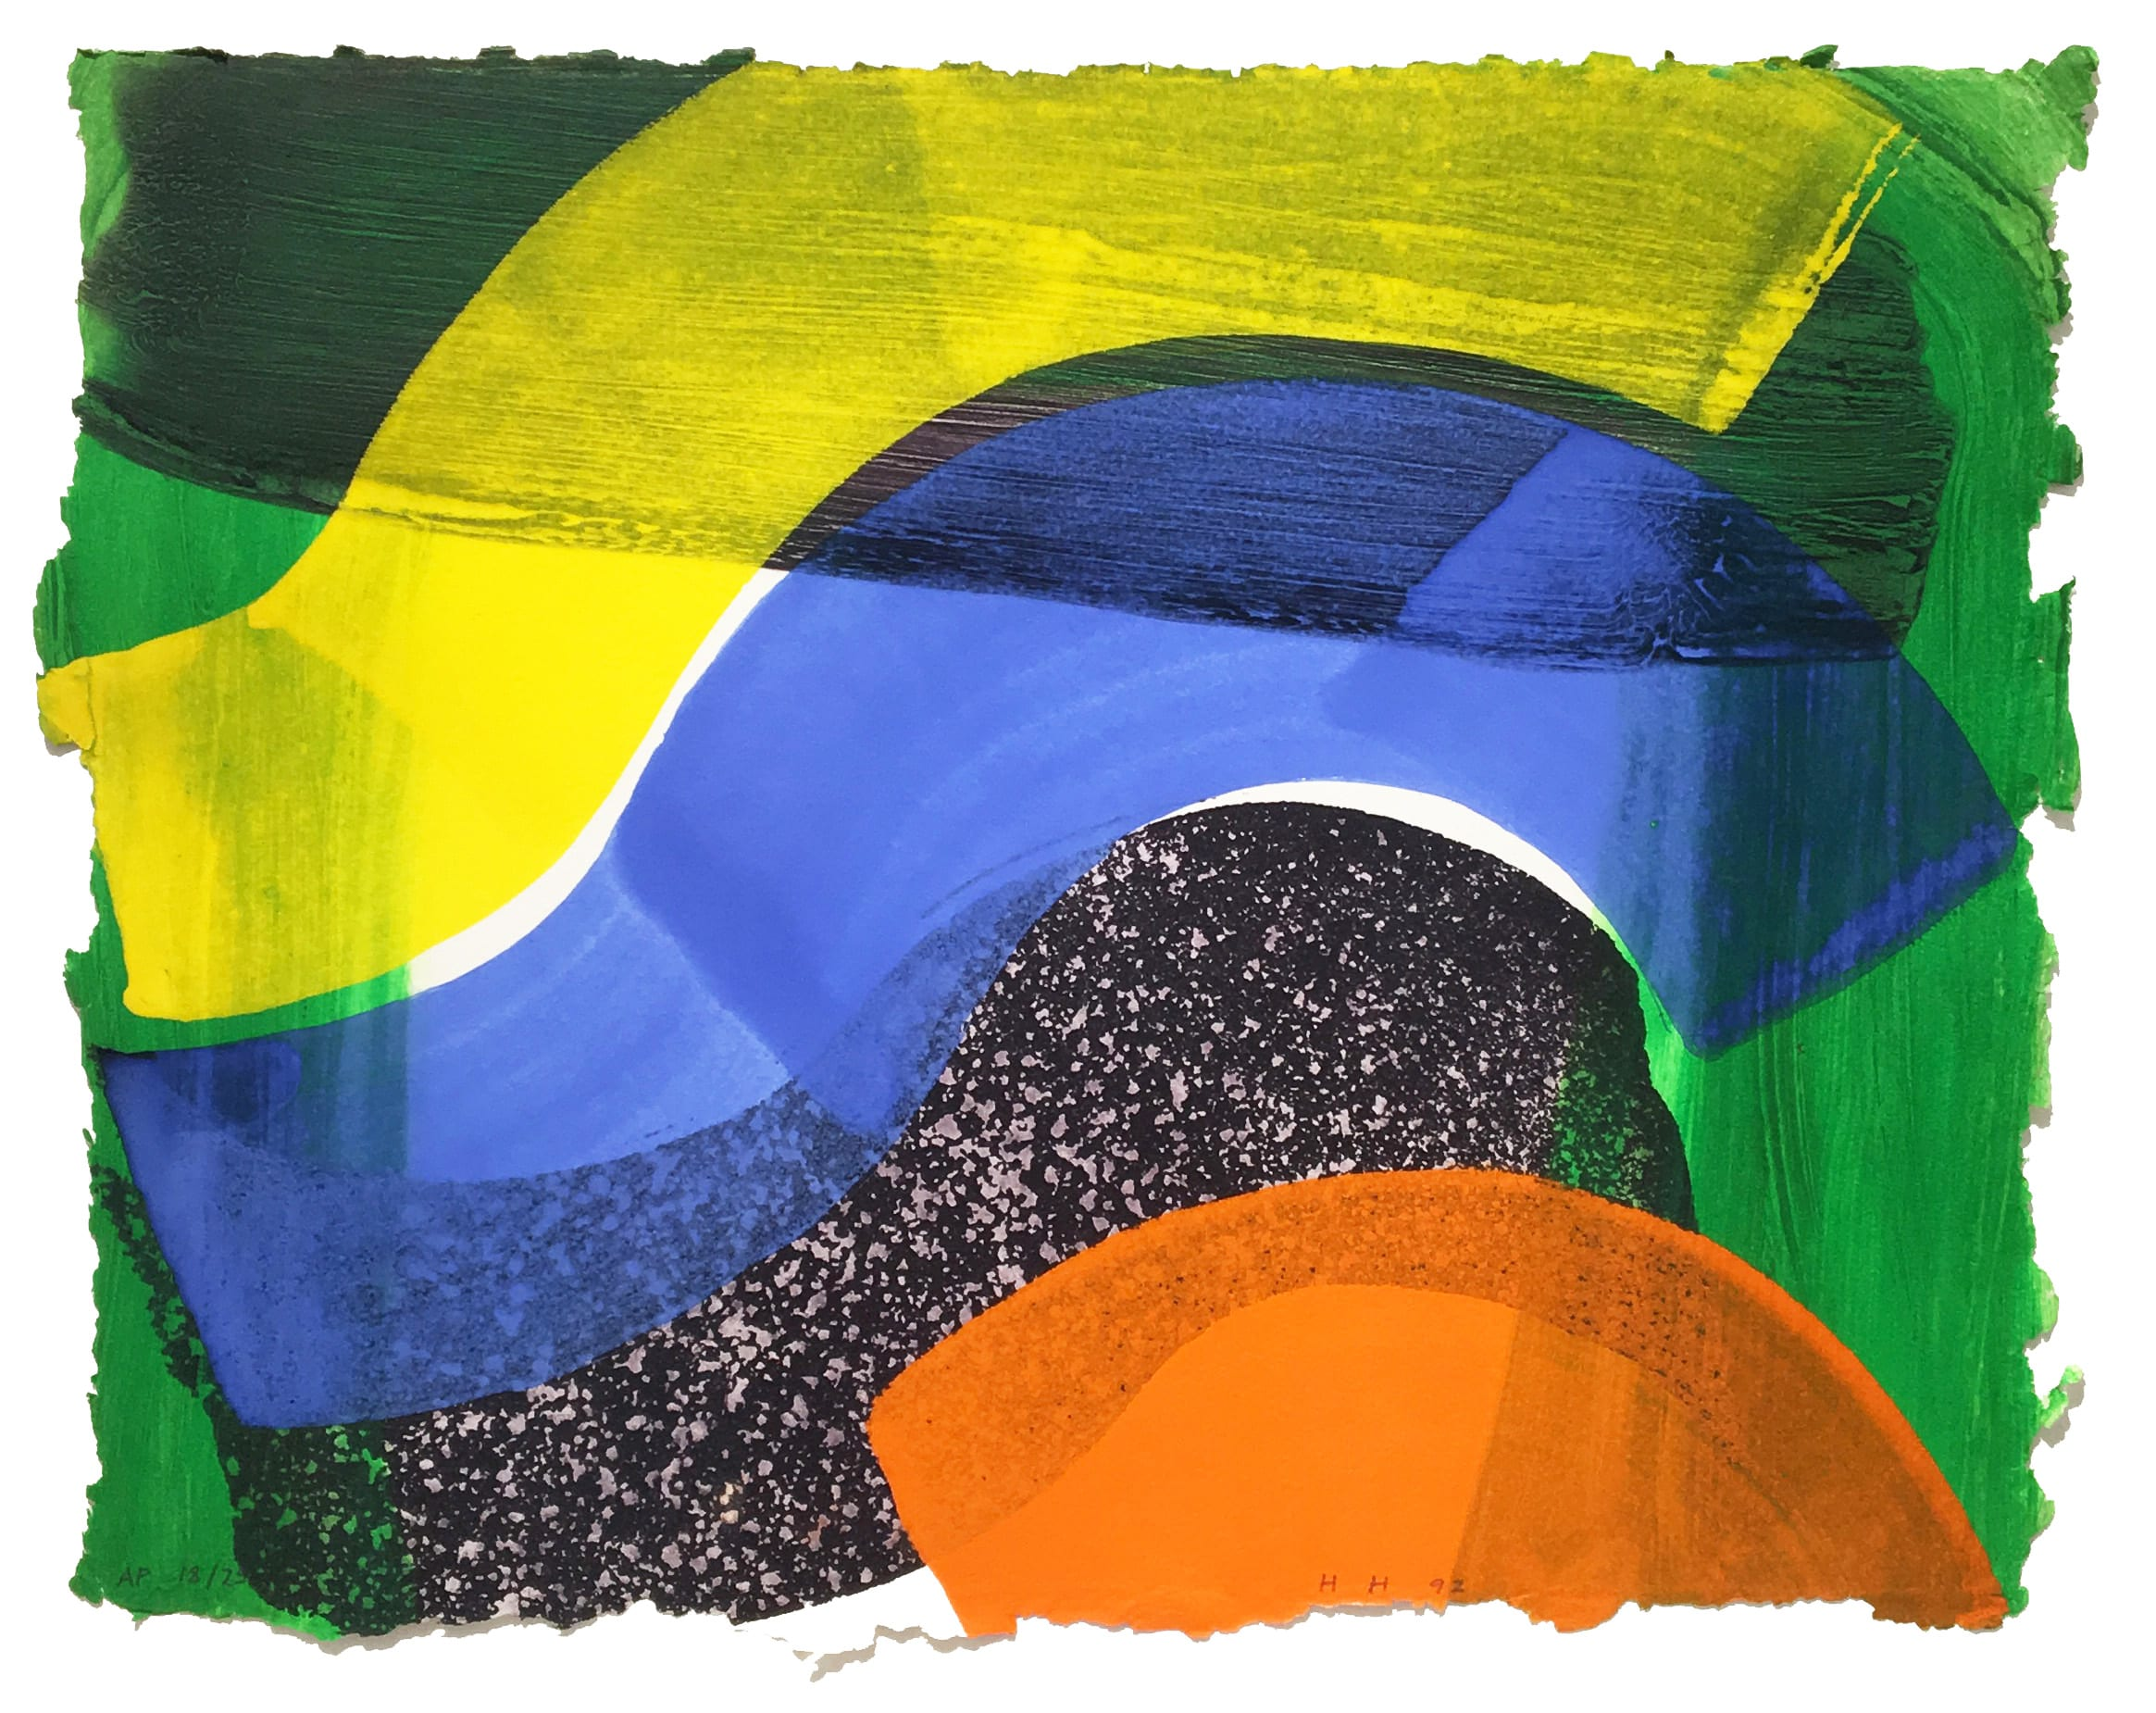 """<span class=""""link fancybox-details-link""""><a href=""""/artists/76-howard-hodgkin/works/989-howard-hodgkin-put-out-more-flags-1992/"""">View Detail Page</a></span><div class=""""artist""""><strong>Howard Hodgkin</strong></div> 1932 - 2017 <div class=""""title""""><em>Put Out More Flags</em>, 1992</div> <div class=""""signed_and_dated"""">signed with initials and dated in pencil in lower centre<br /> from the edition of 75 with XXV artist's proofs</div> <div class=""""medium"""">Lift-ground etching and aquatint</div> <div class=""""dimensions"""">42 x 52.4cm</div>"""